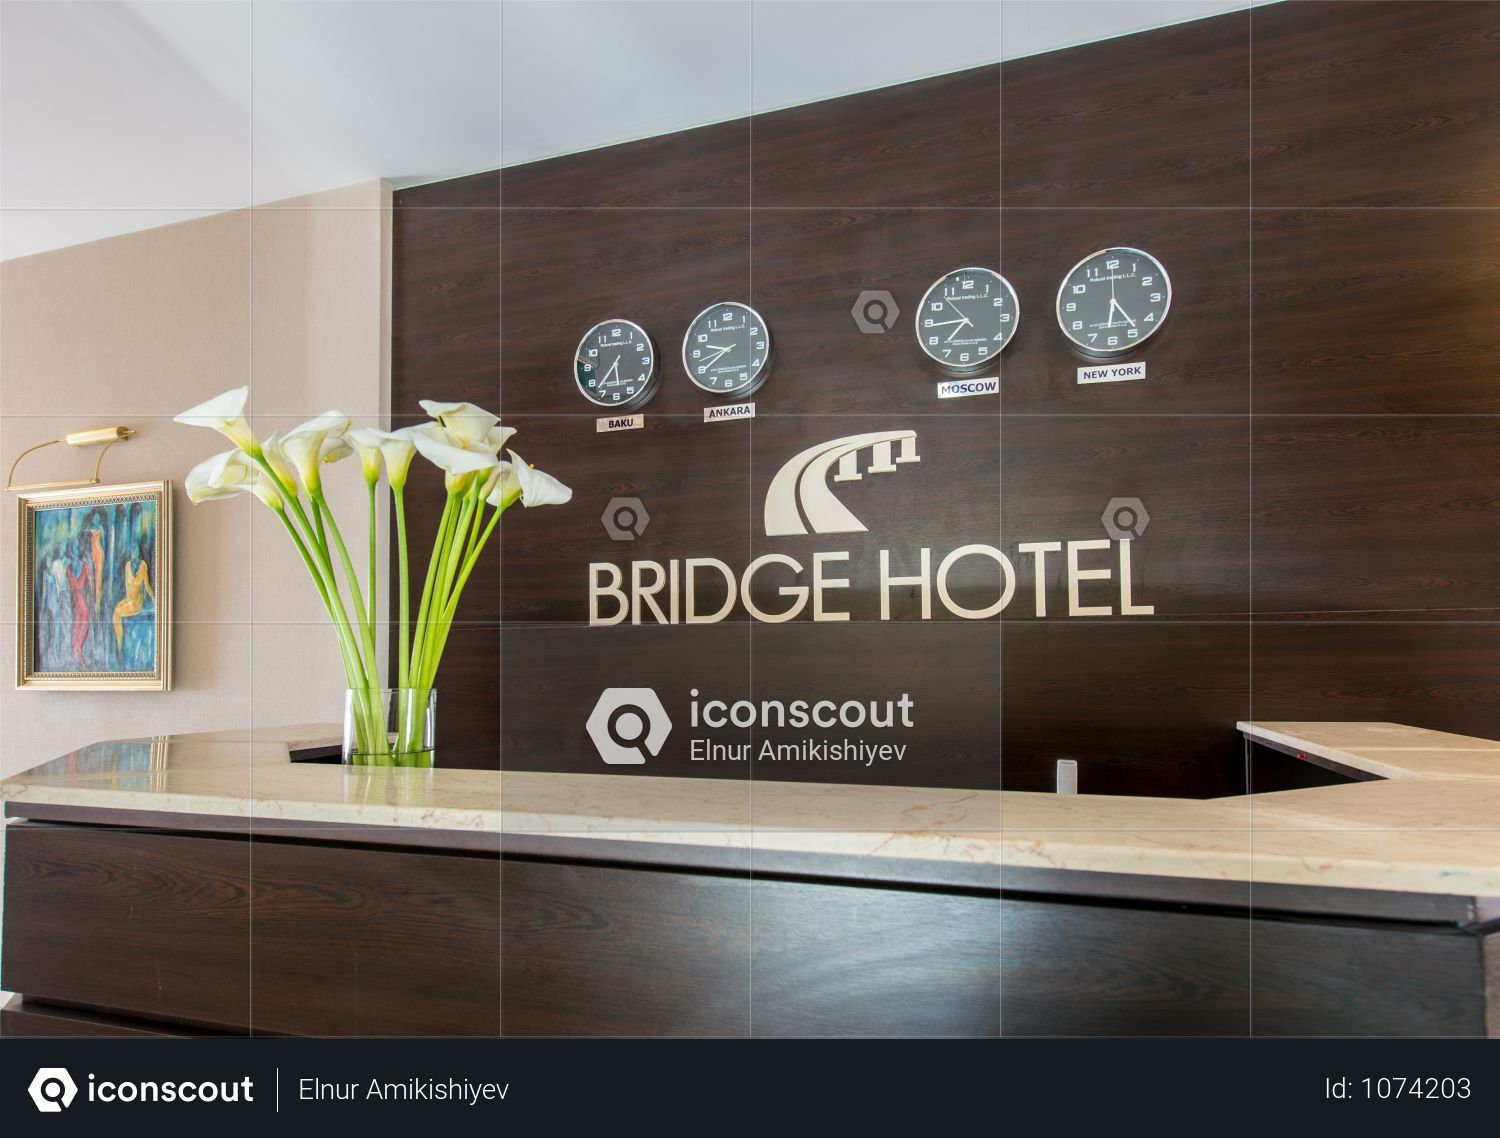 Premium The Hotel Reception With Desk And Clocks Photo Download In Png Jpg Format Hotel Reception Airplane Decor Hotel